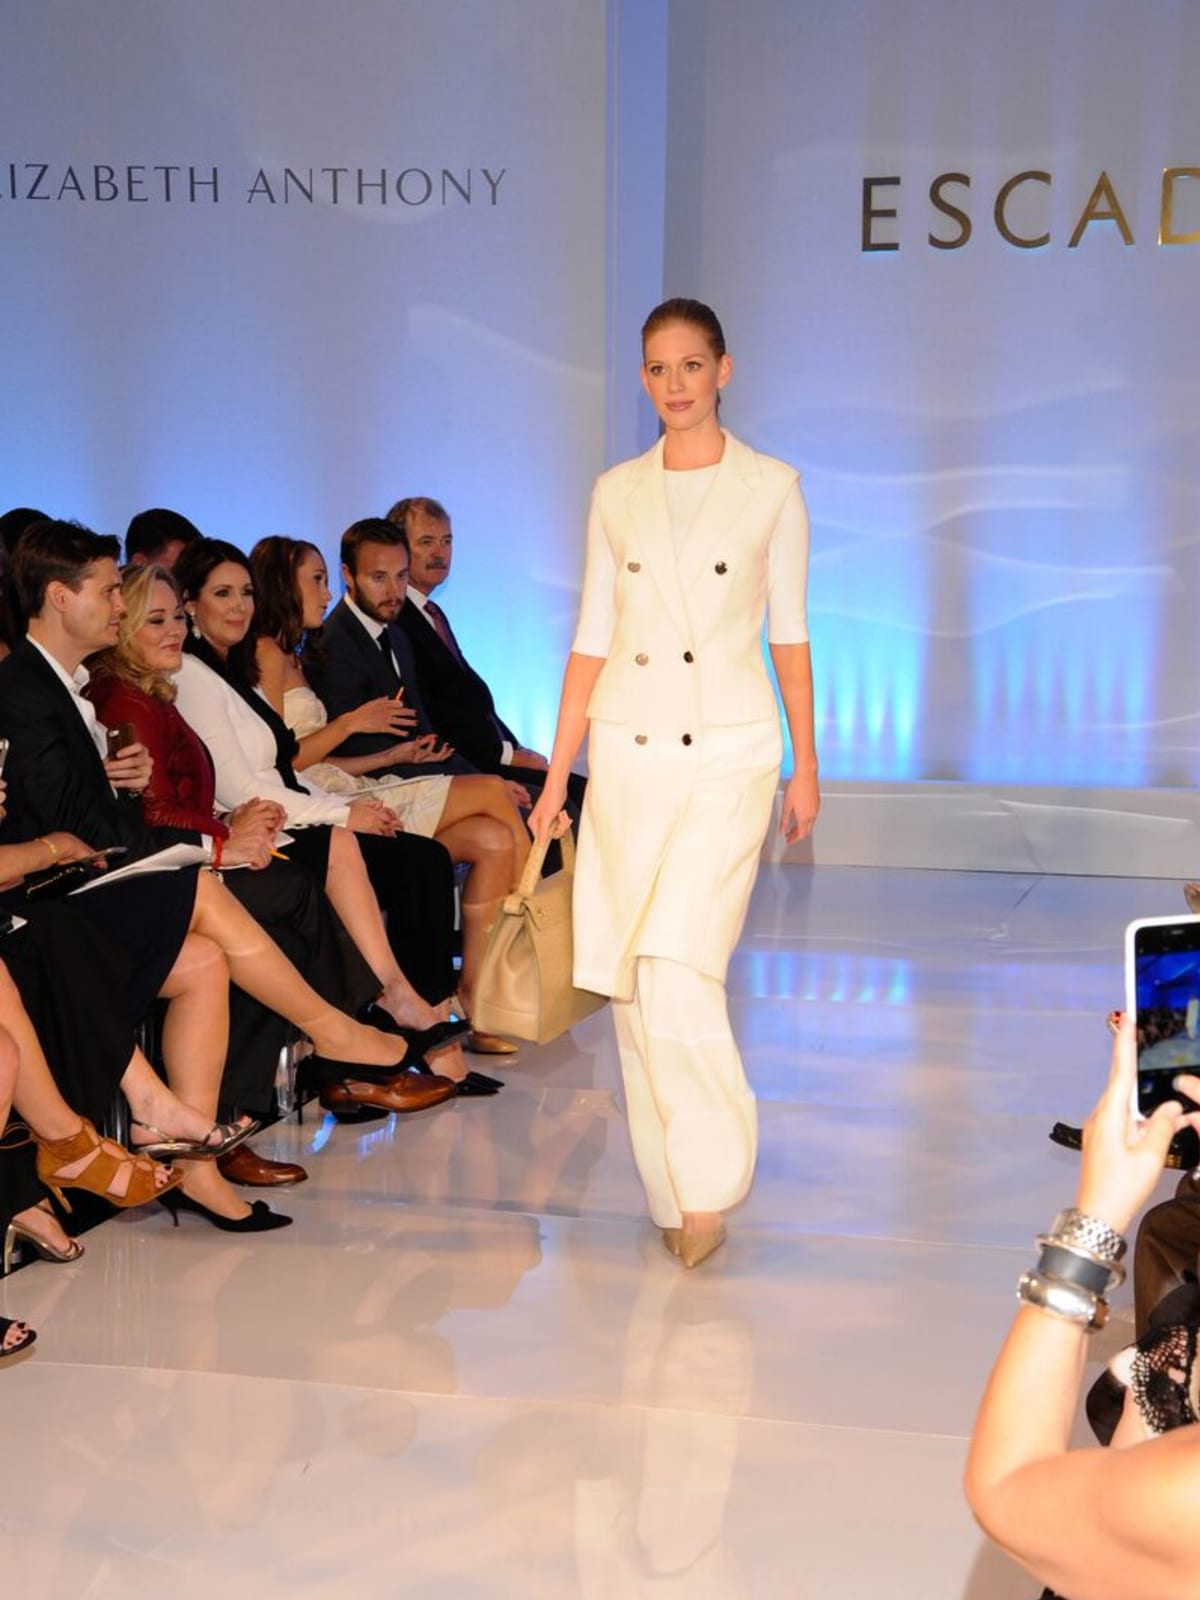 Escada runway show at Elizabeth Anthony Generations of Glamour